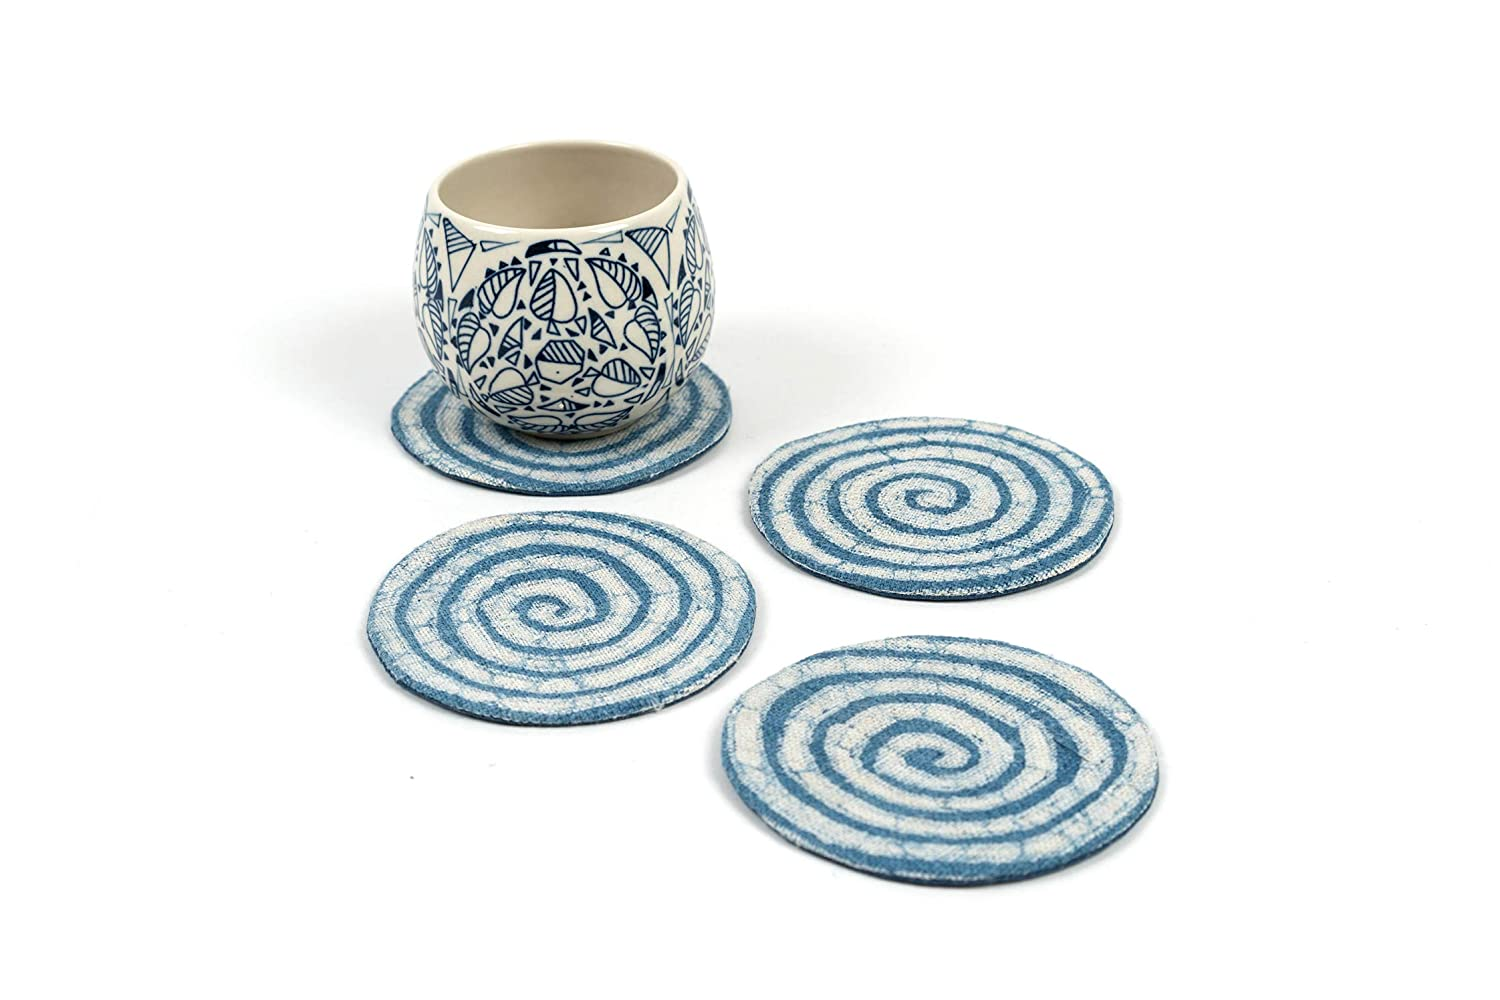 4 Inches Absorbent Coasters Organic Hemp Coasters for Drinks Absorbent Viethnic Set of 4 Handmade Ethnic Hmong Batik Fabric Drink Coasters Navy